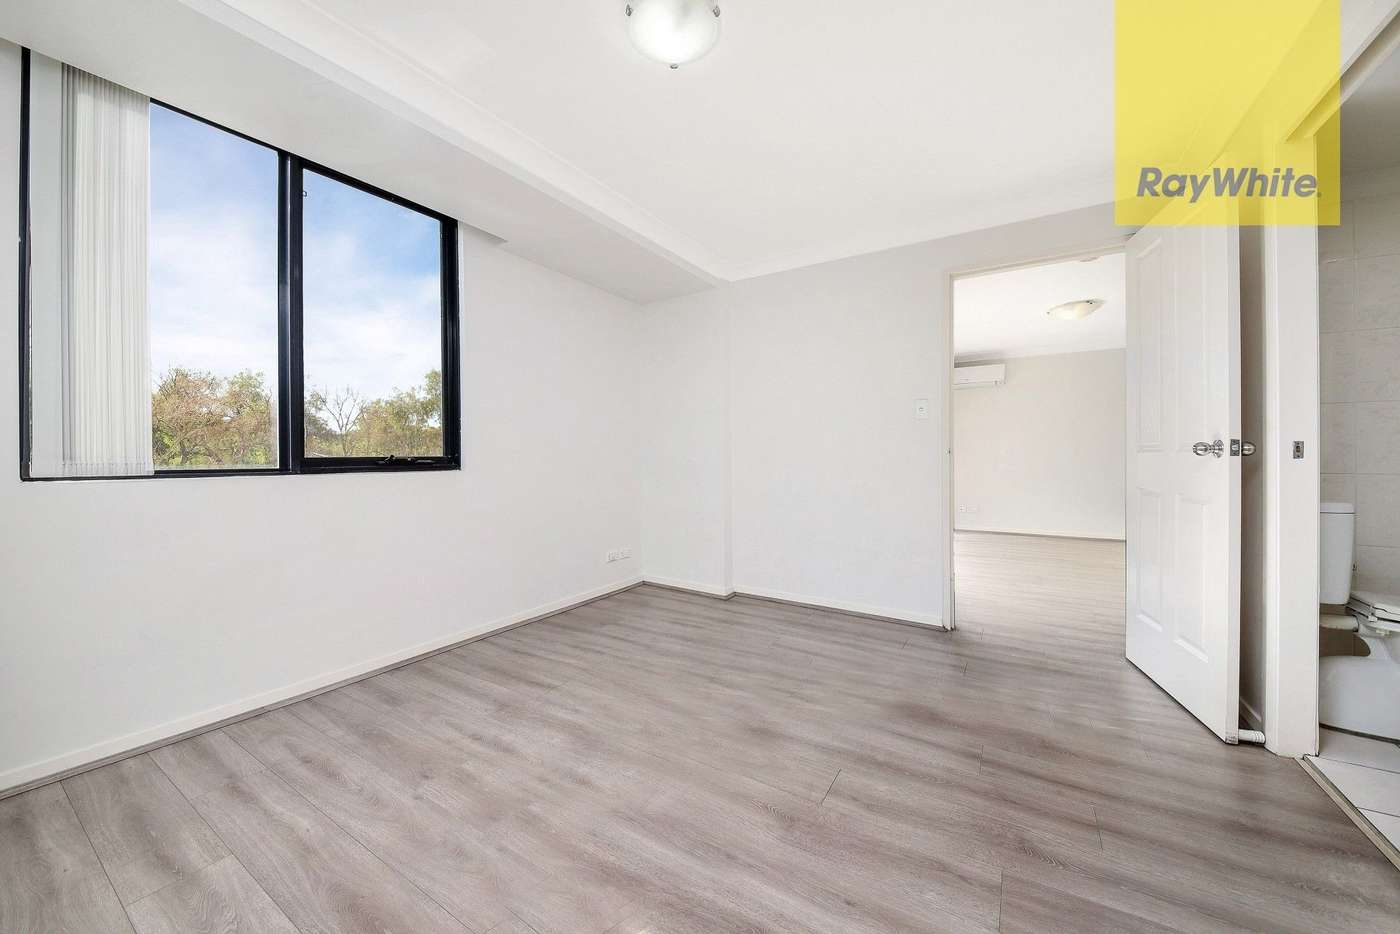 Sixth view of Homely apartment listing, 5/32 Hassall Street, Parramatta NSW 2150